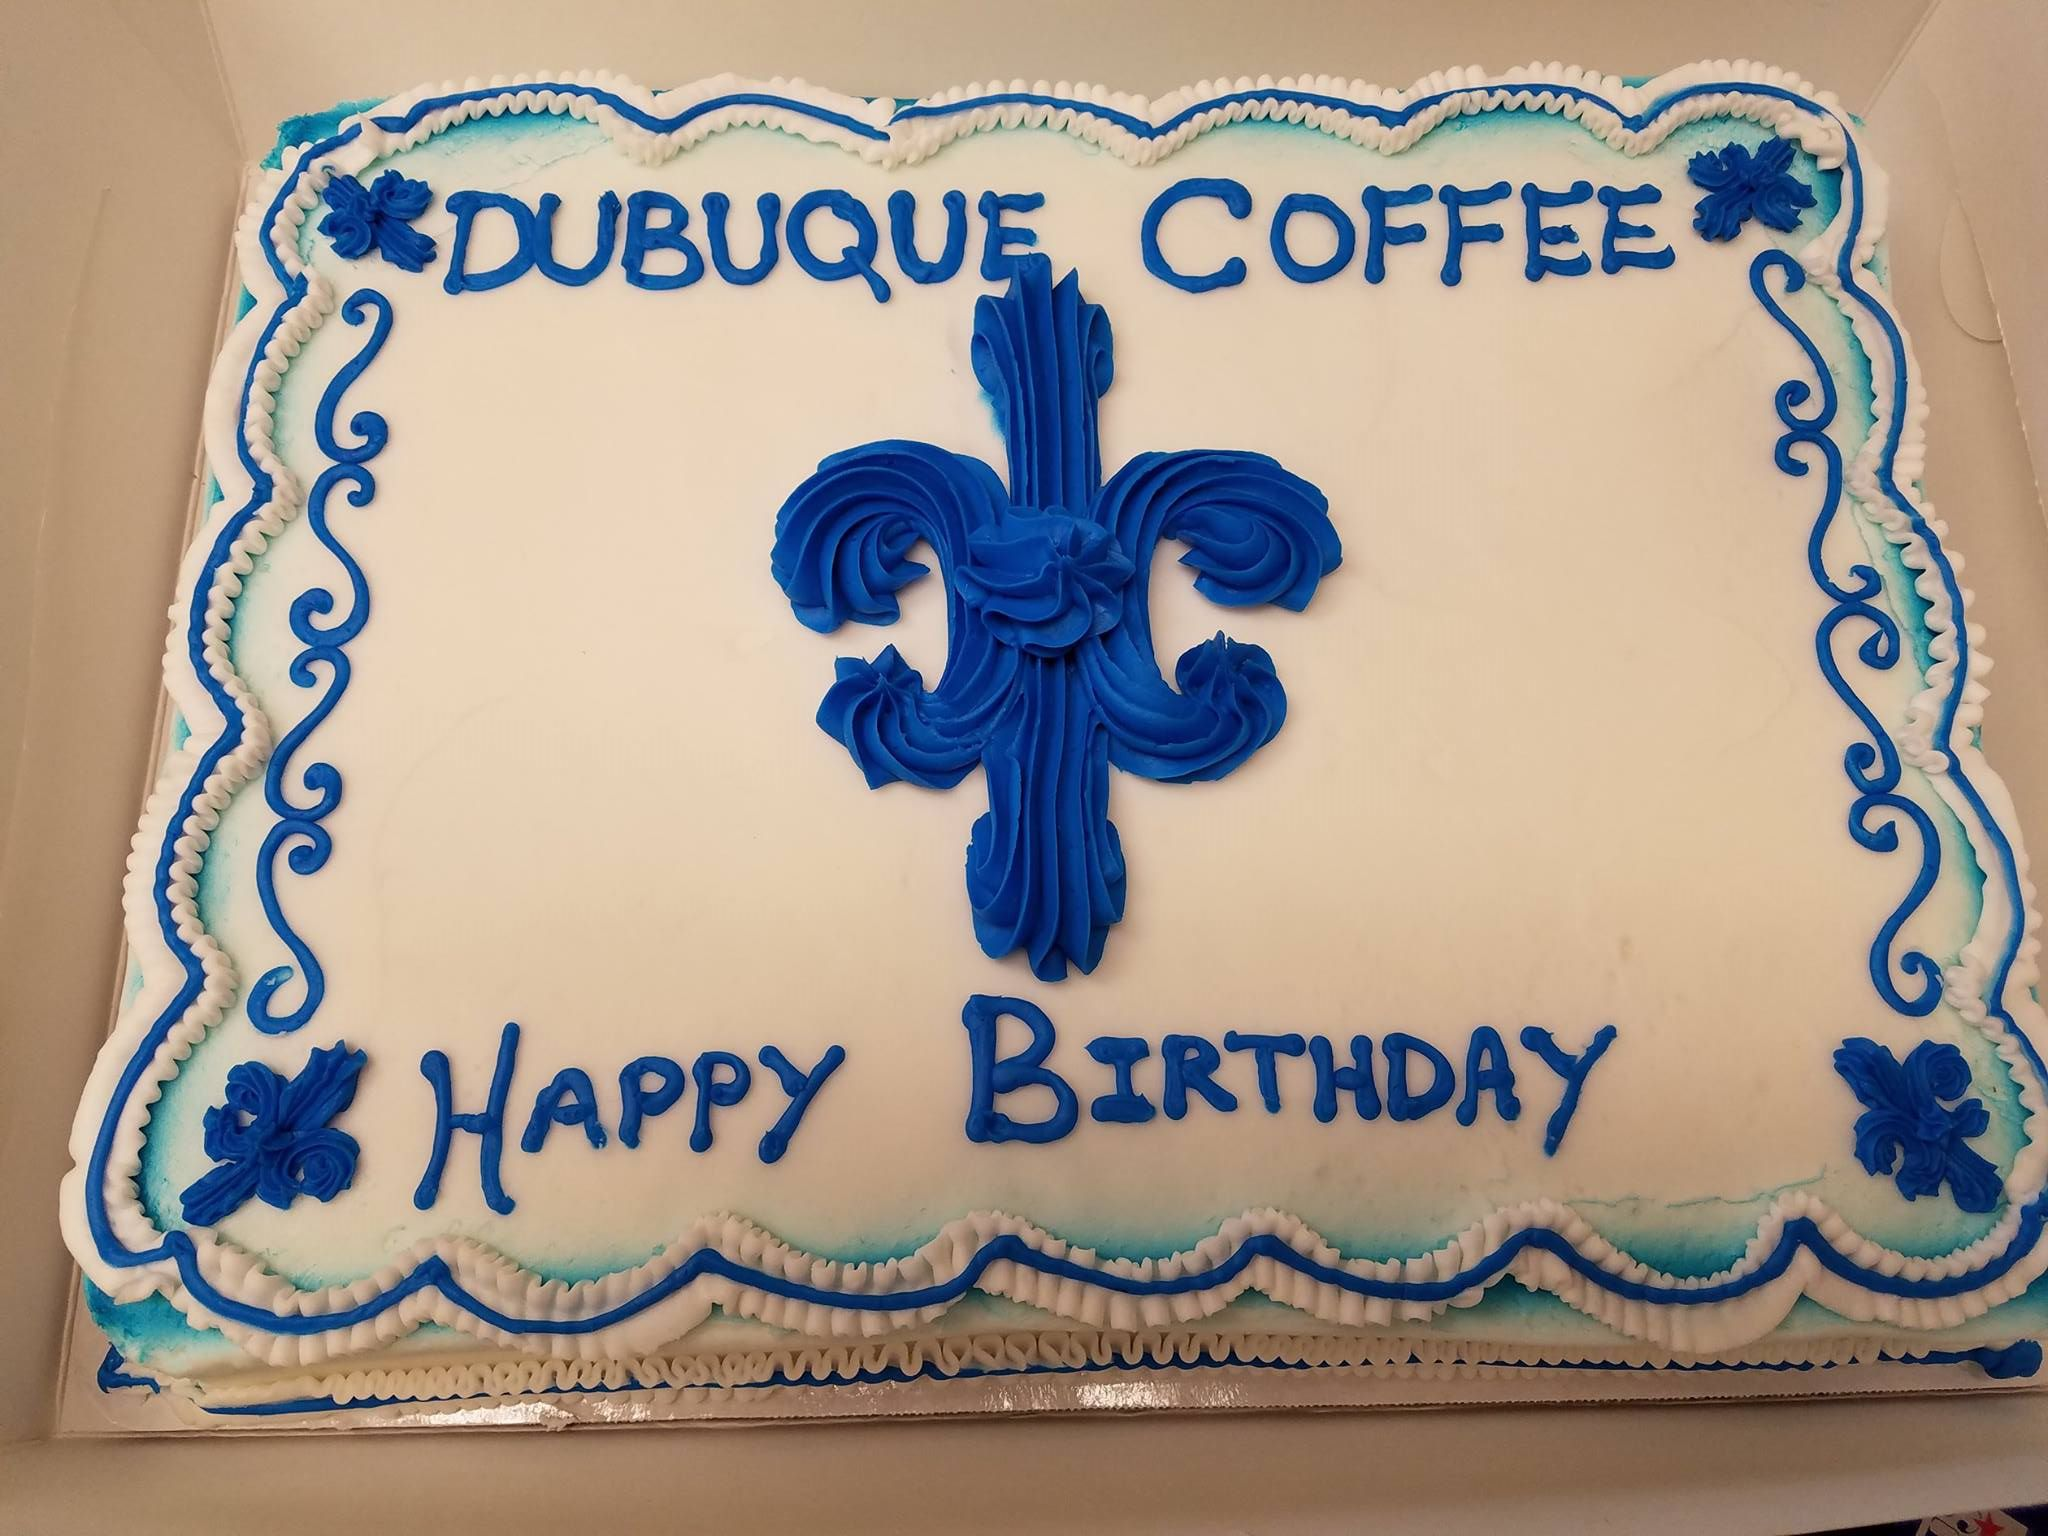 Dubuque Coffee Now Available At Retail